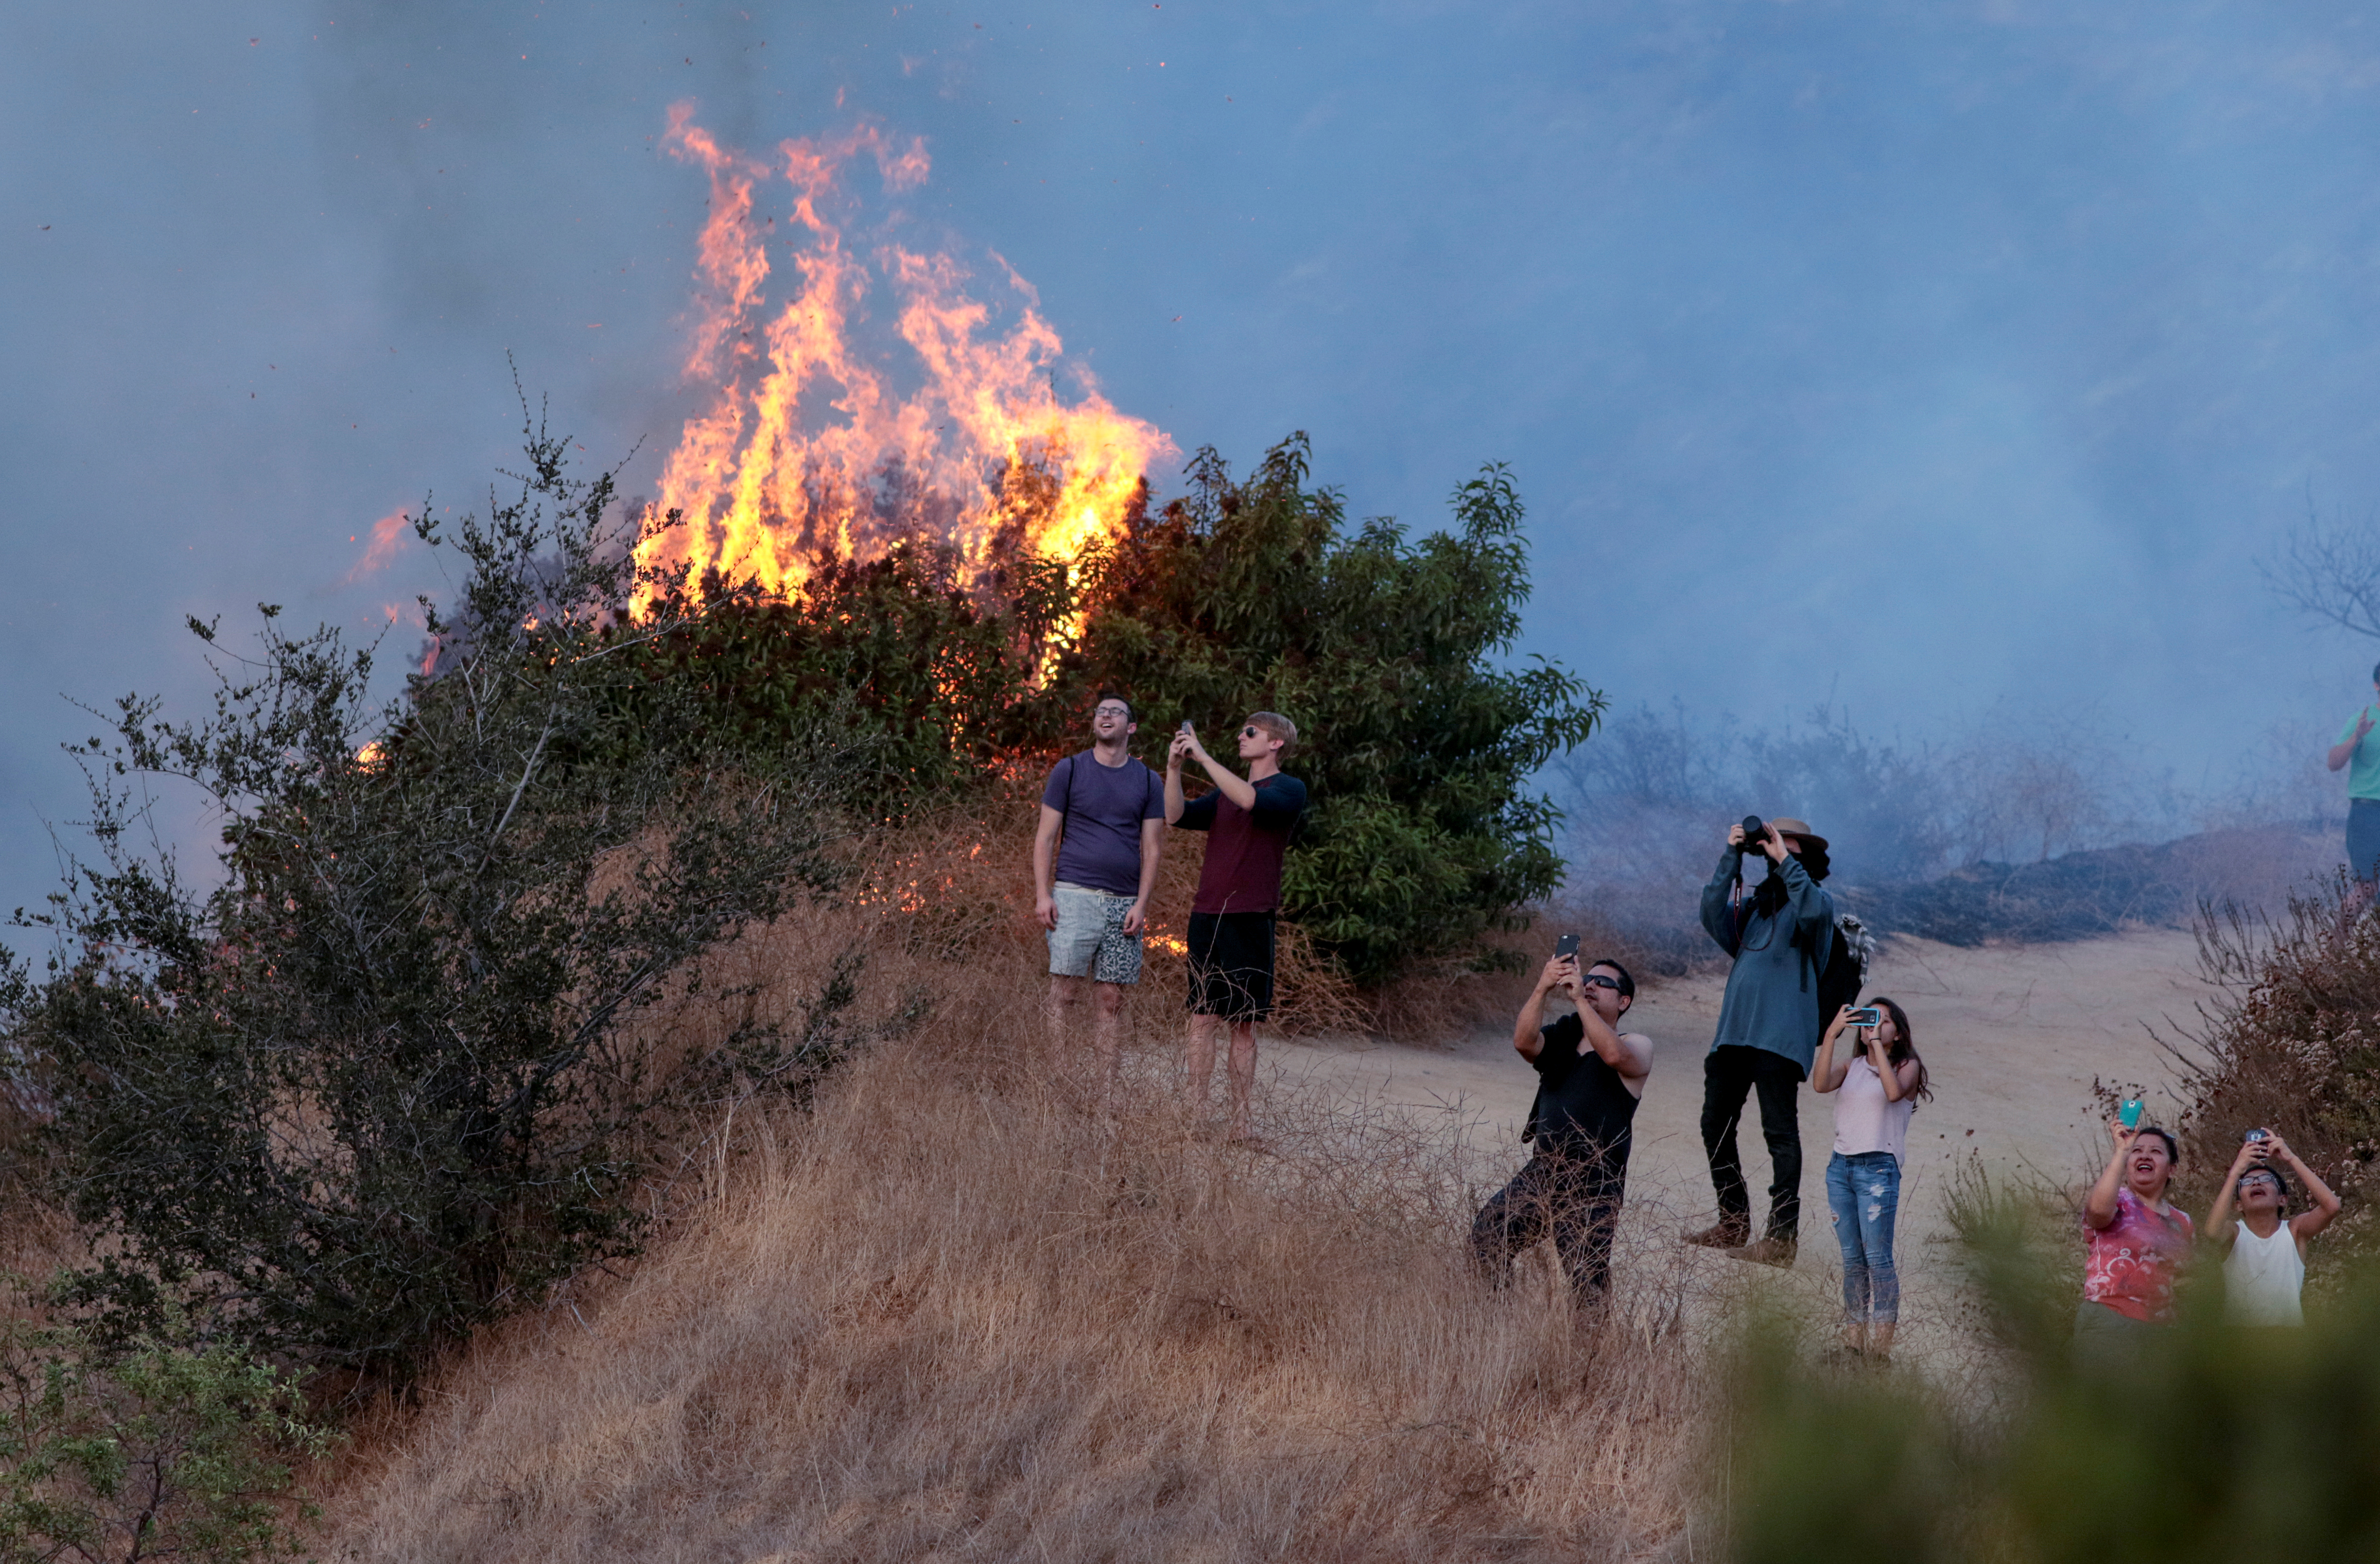 Spectators watch a helicopter fly over the La Tuna Canyon fire over Burbank. (REUTERS/ Kyle Grillot)